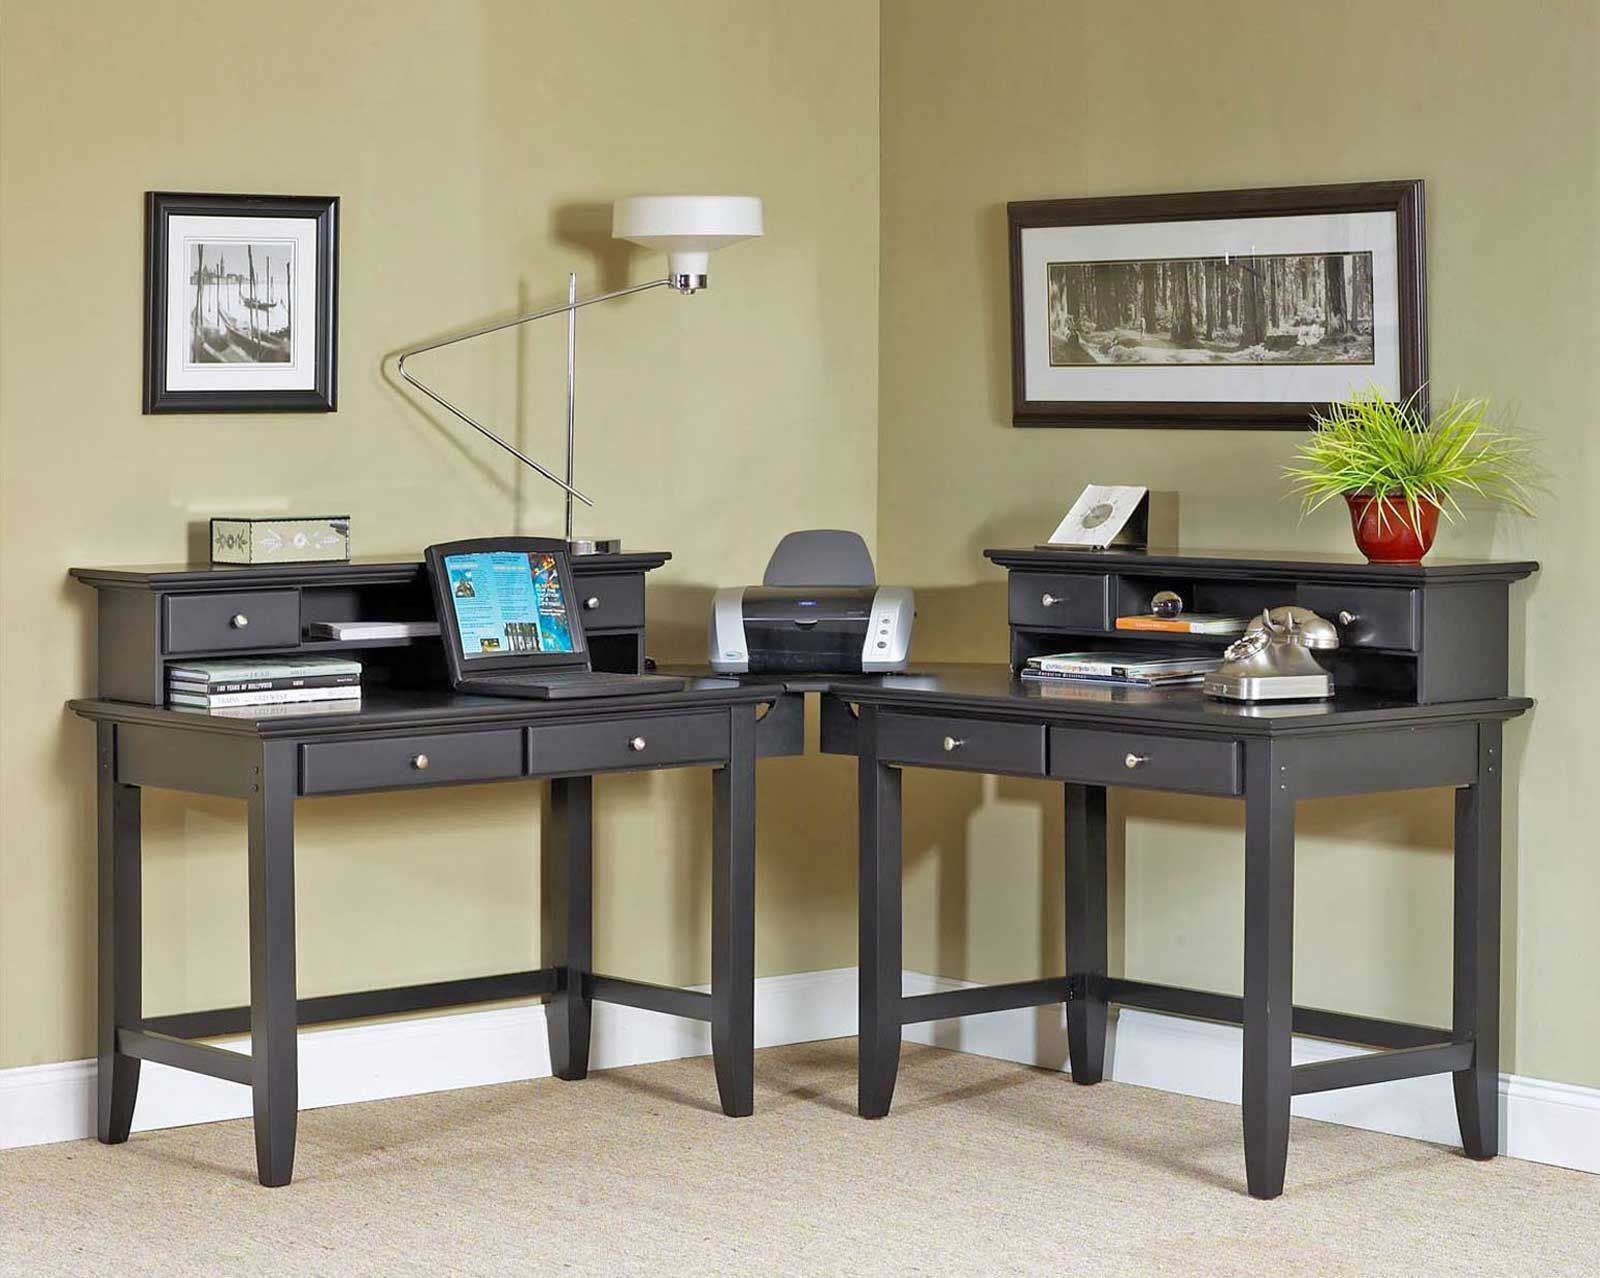 computer desk ideas unique and simple modern desks mid century home office designing with for ikea t